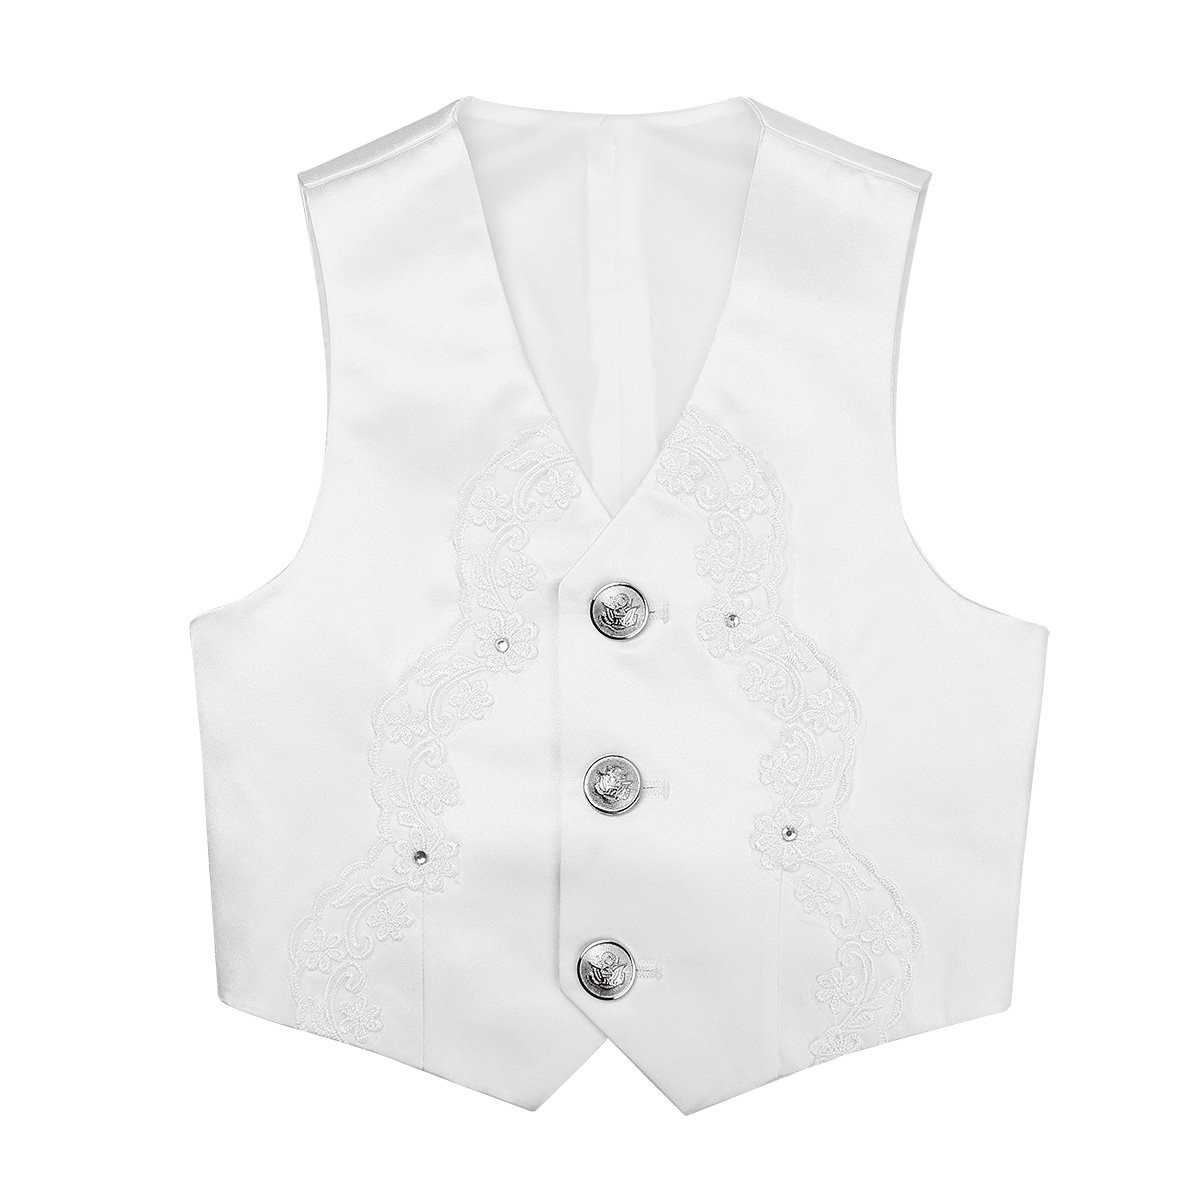 iEFiEL Kids Boys' Wedding Formal Waistcoat Stage Show Performance Gentleman Vest